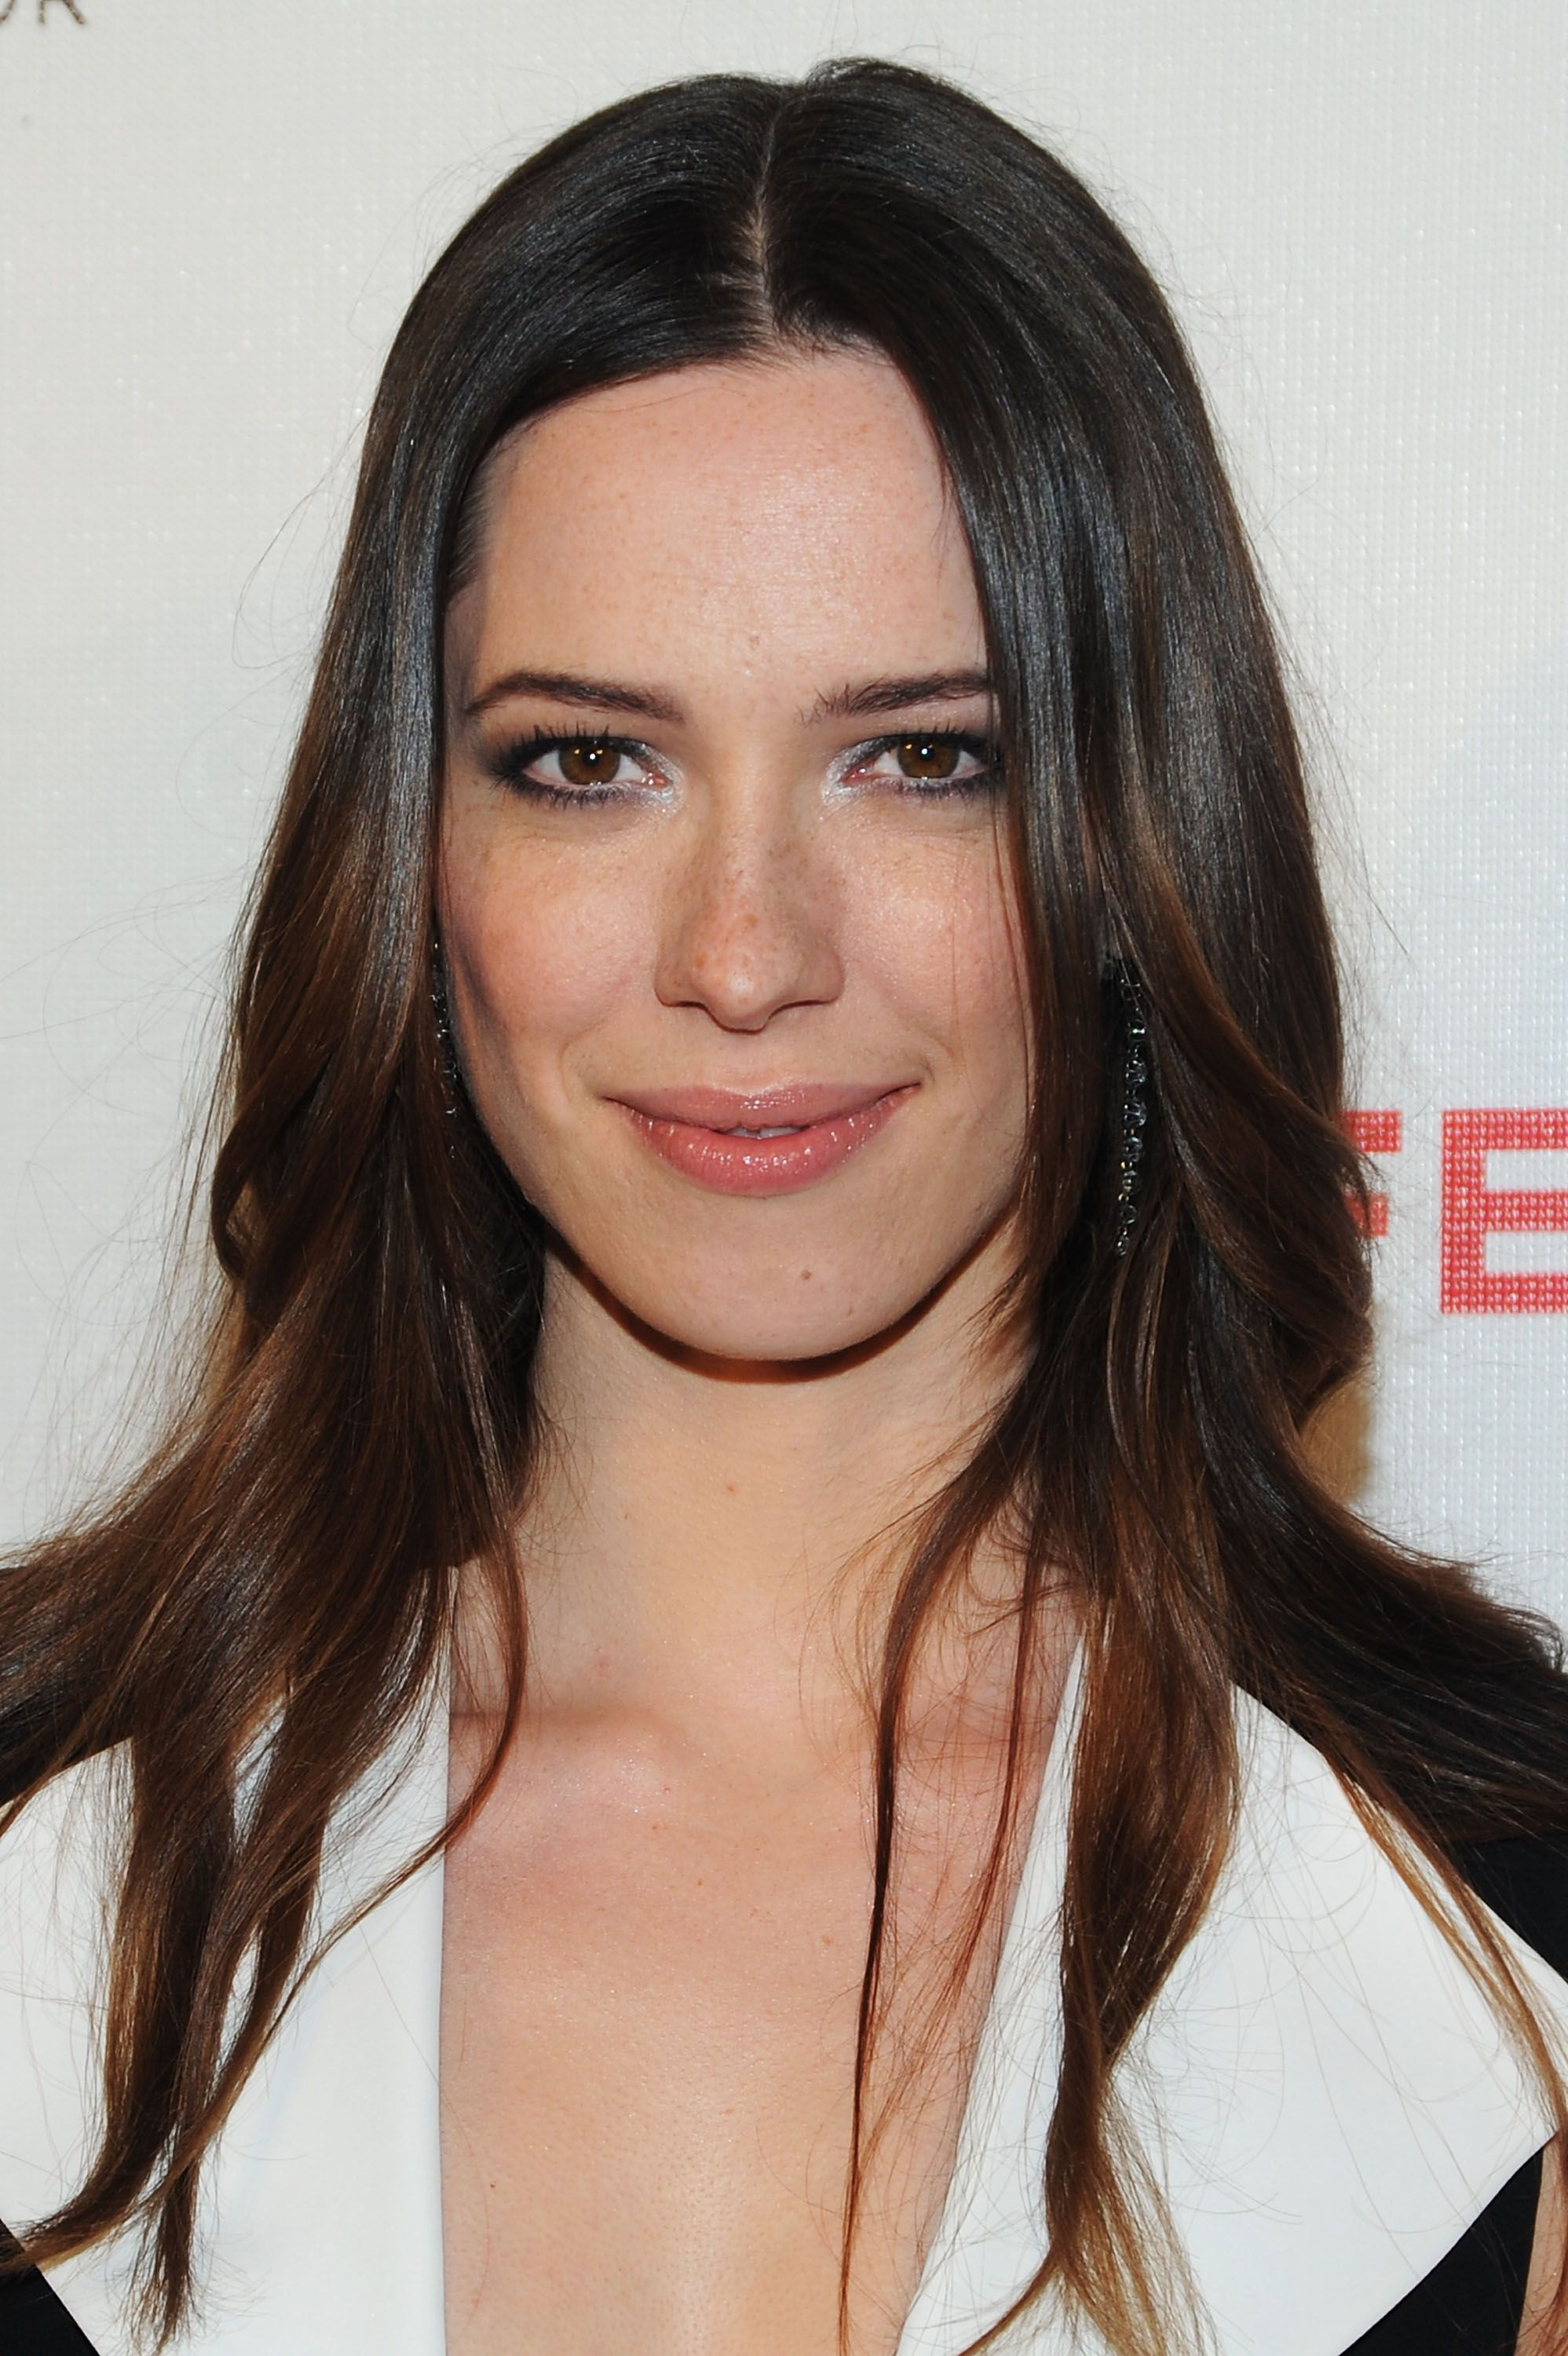 ¿Cuánto mide Rebecca Hall? - Real height Image?locale=es-mx&target=circle